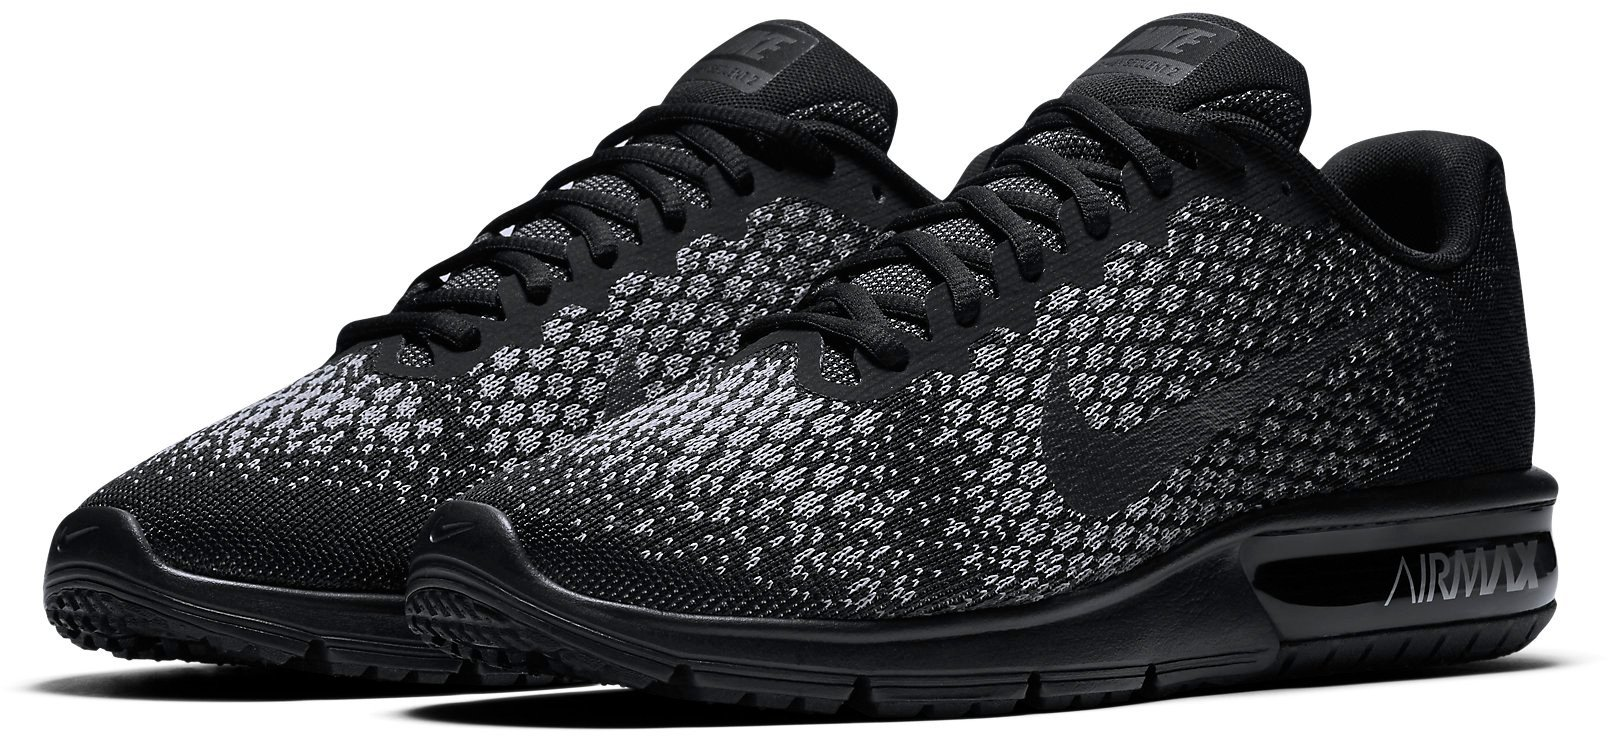 running shoes nike air max sequent 2. Black Bedroom Furniture Sets. Home Design Ideas